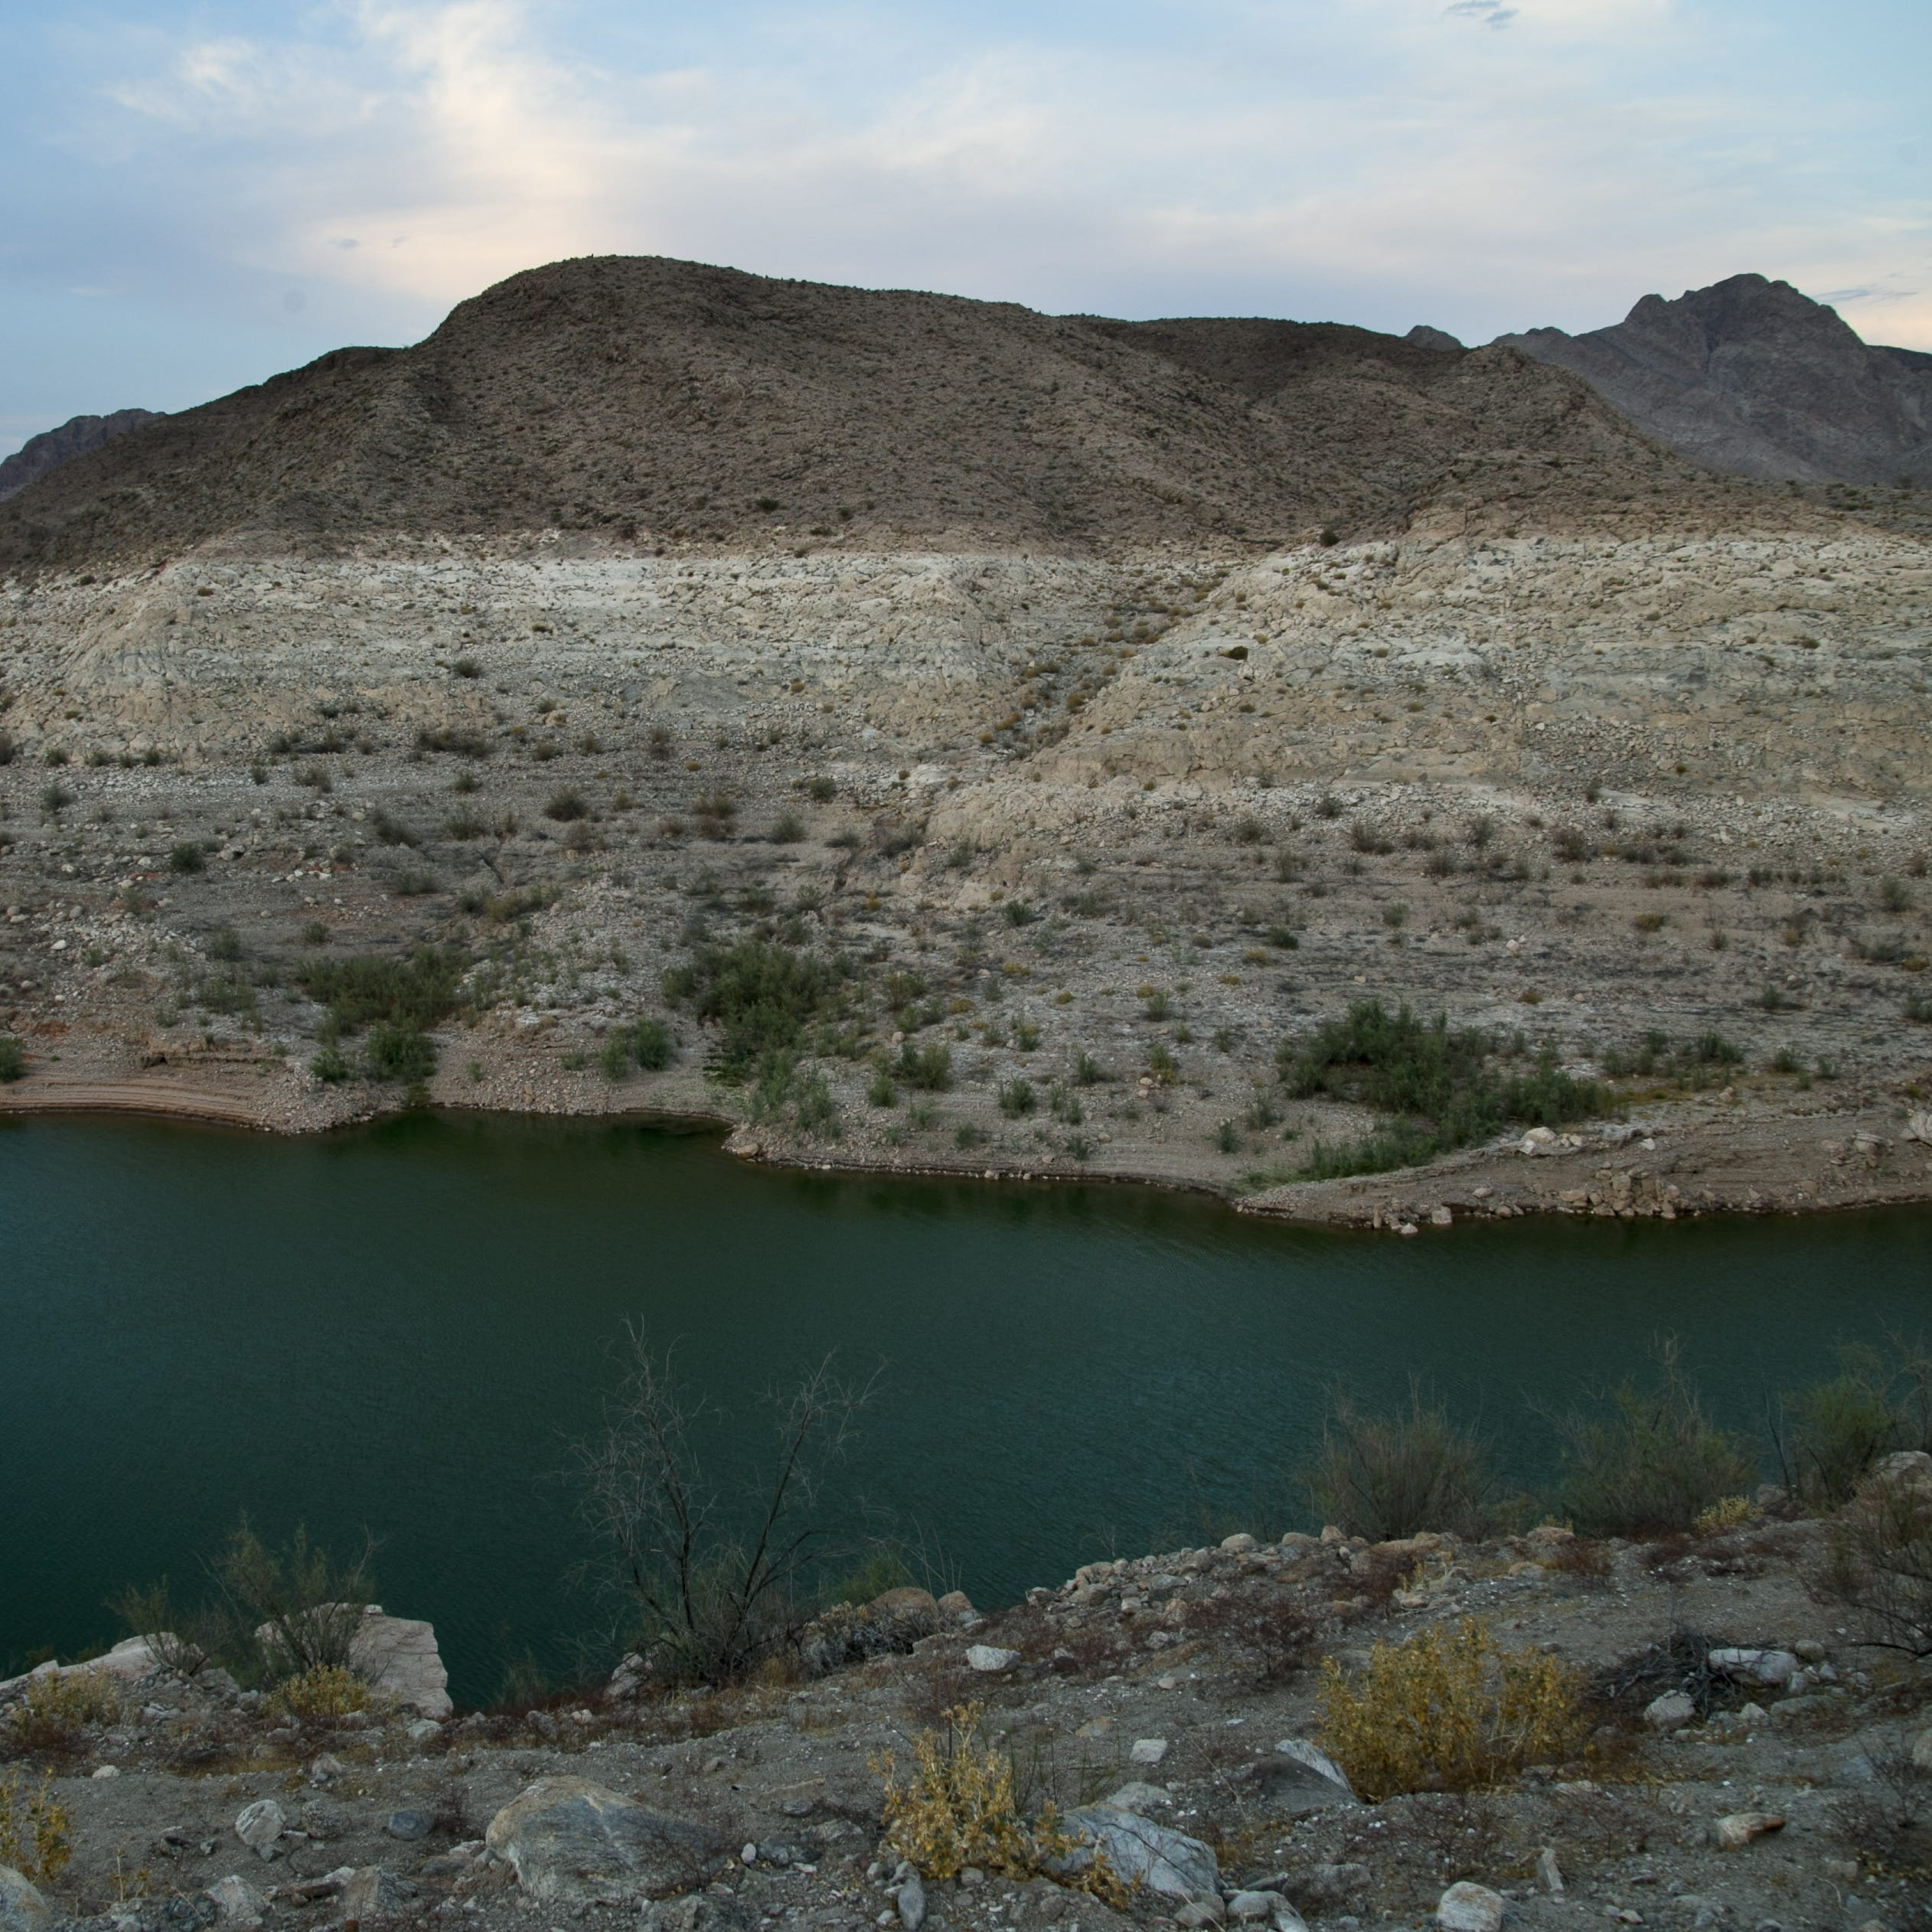 Arizona under pressure to pass Colorado River drought plan as deadline nears